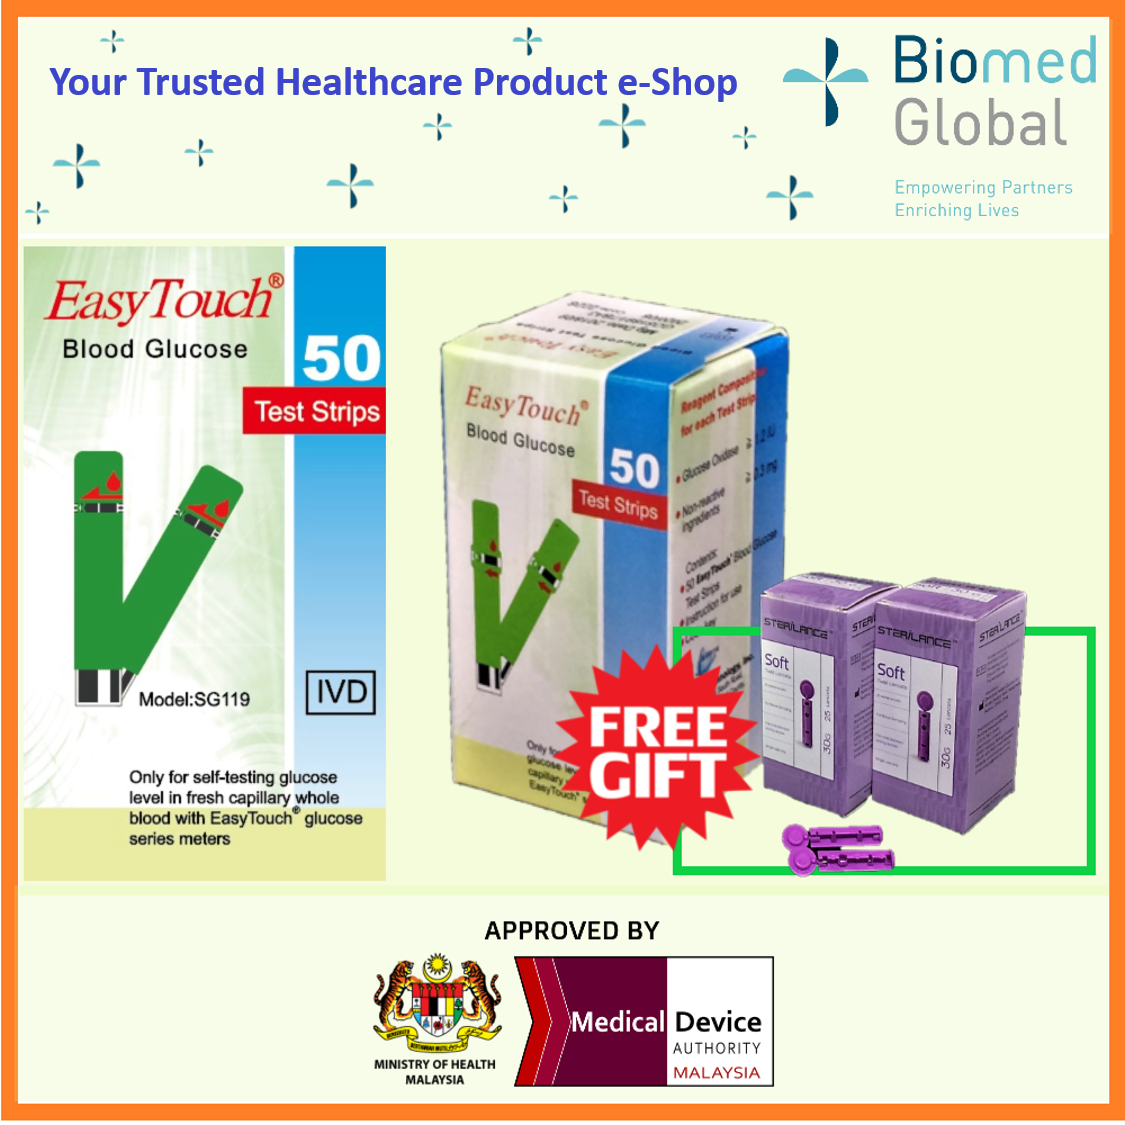 EZ2BUY PACKAGE - EasyTouch GCU Blood Glucose Test Strips, 50 Strips/Box, FREE with 50 Pieces Twist Lancet